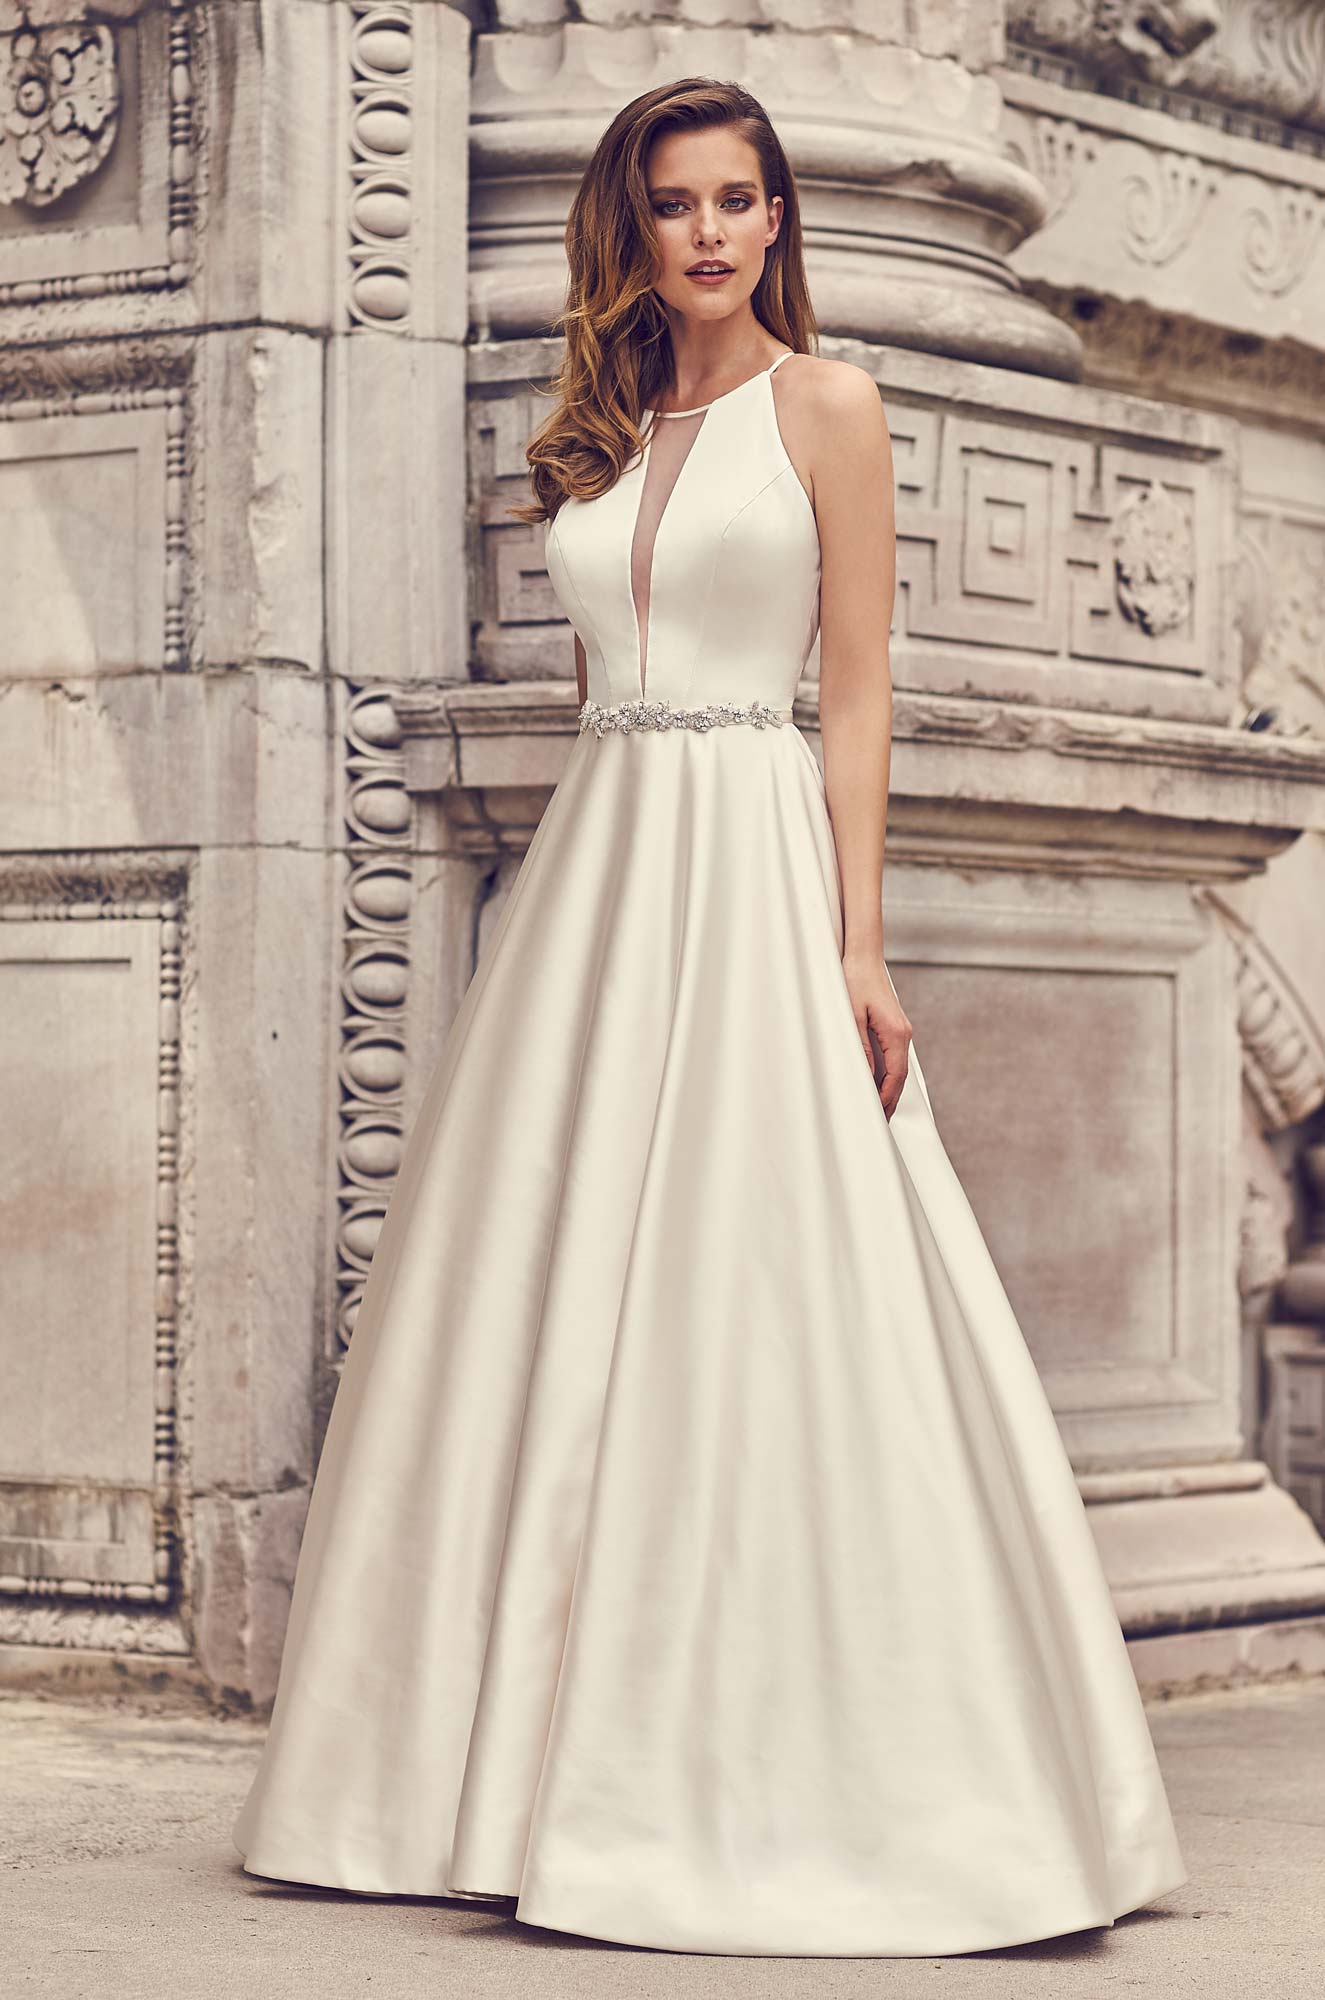 Mira Couture Mikaella 2236 Wedding Dress Bridal Gown Chicago Boutique Full